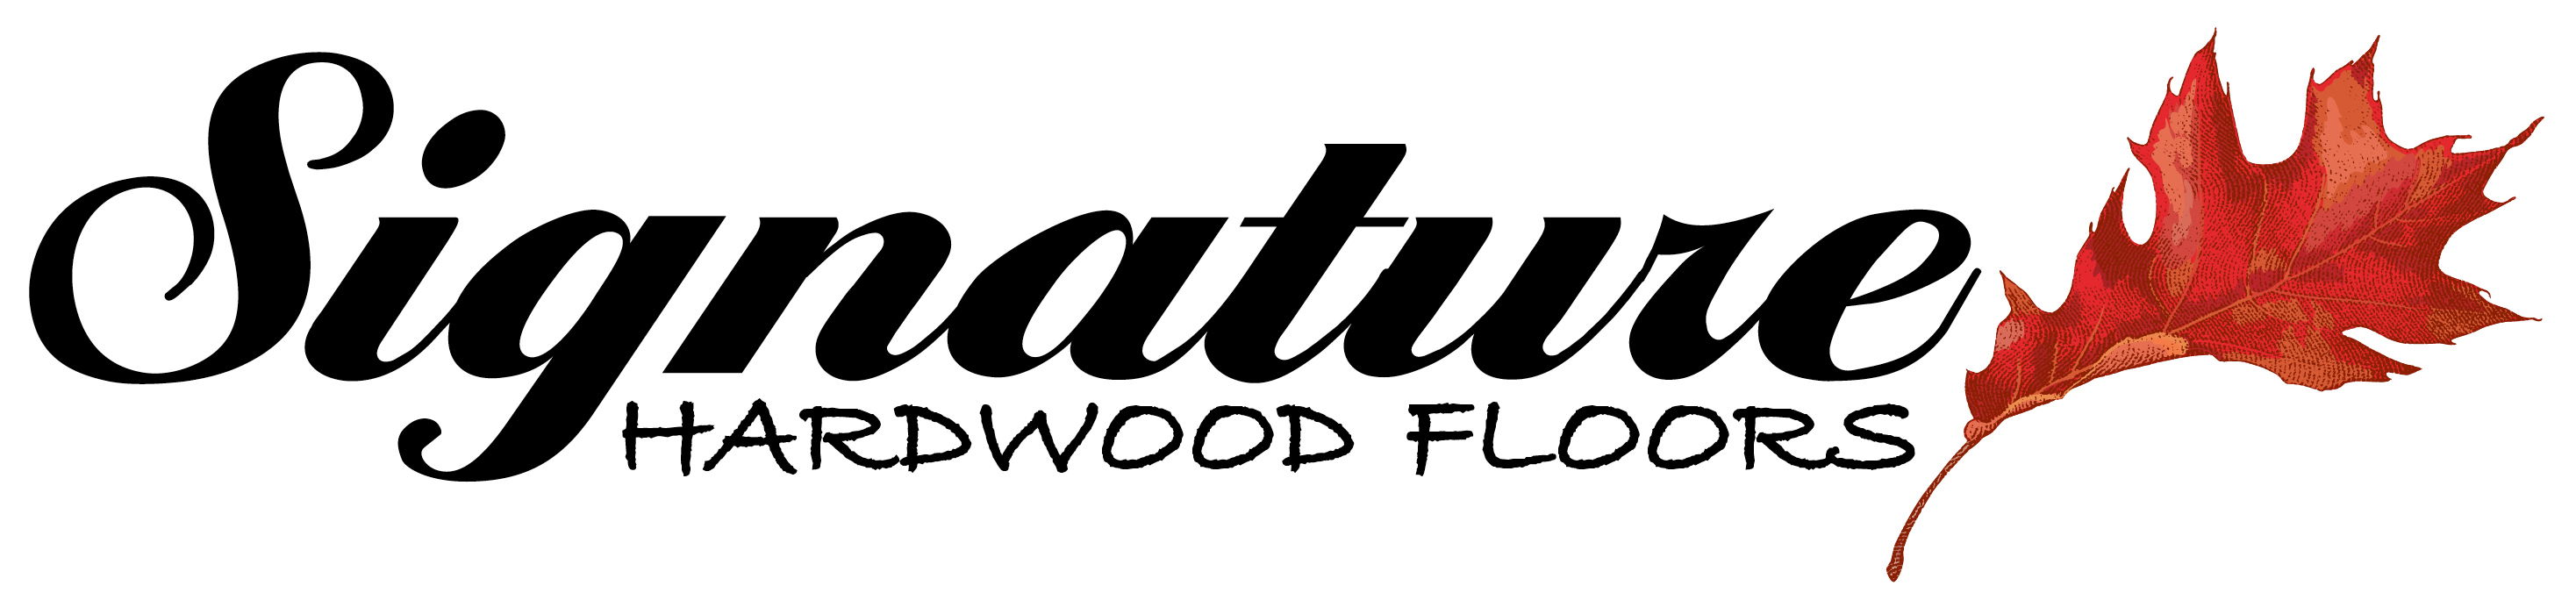 Signature Hardwood Floors logo